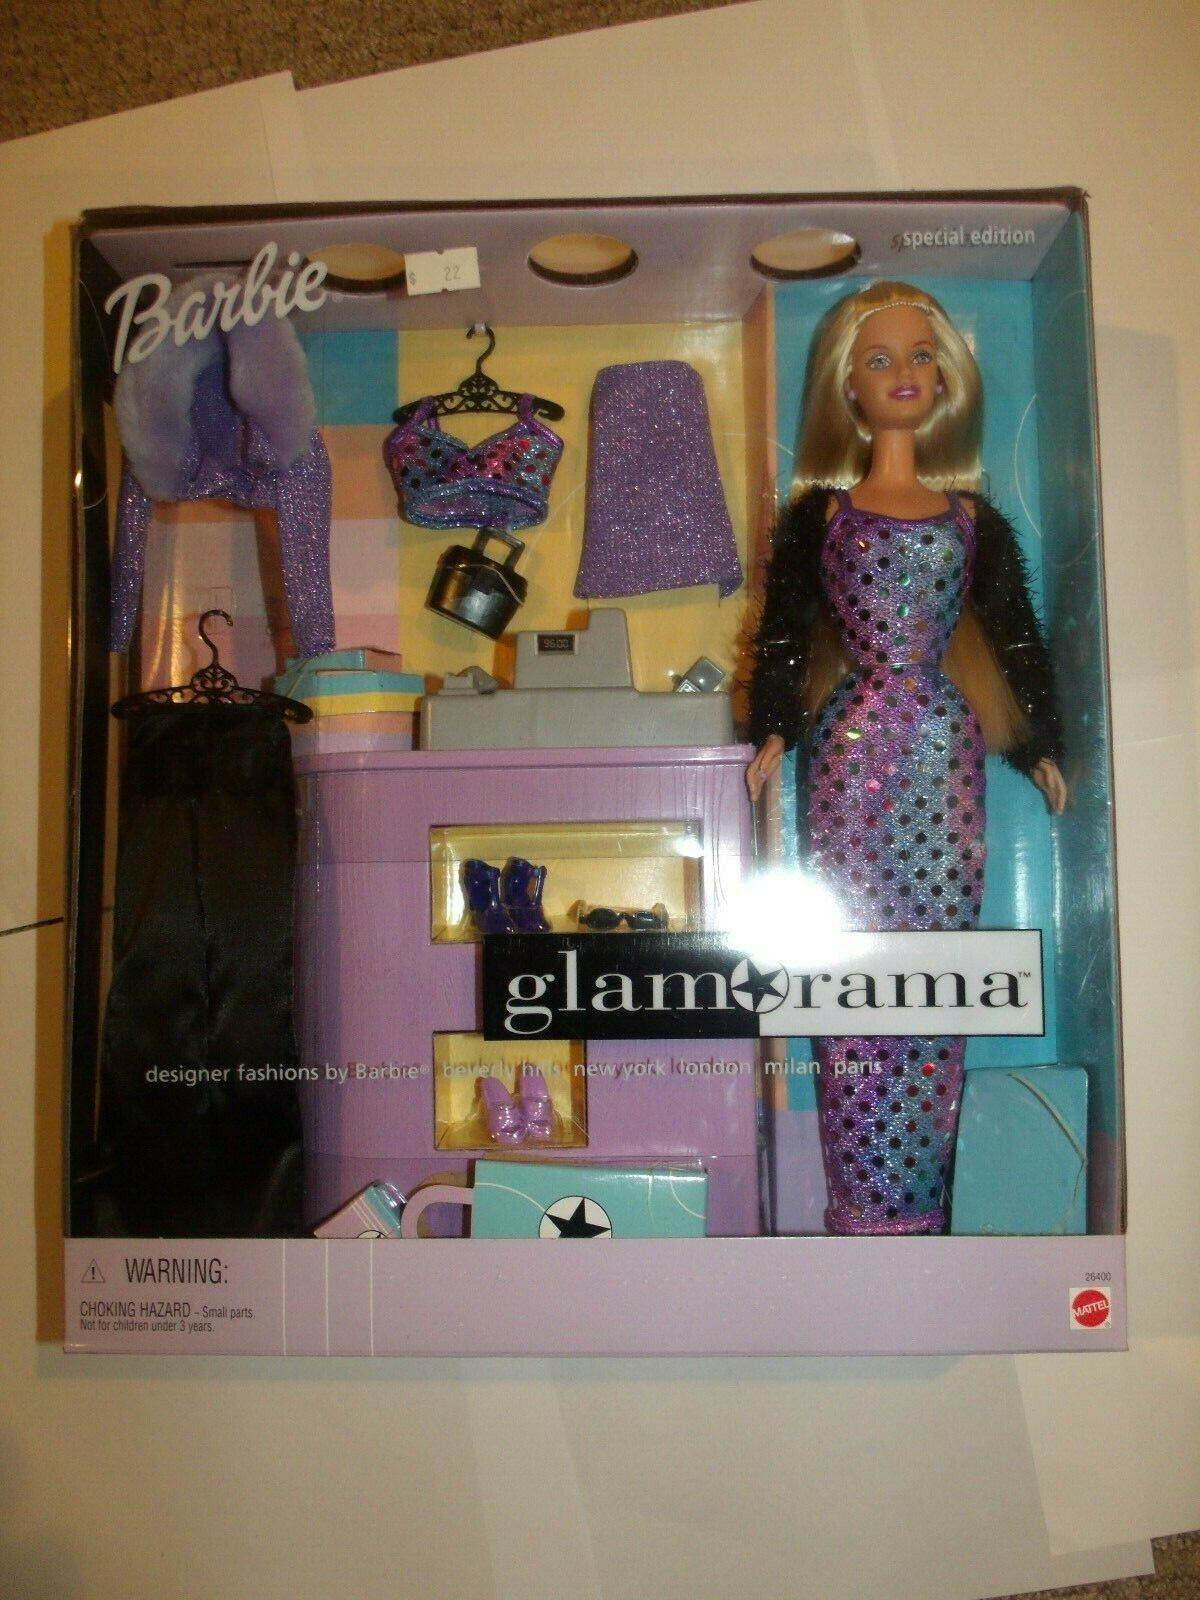 Glamorama Glam O Rama Barbie Doll and Play Set Special Edition NEW